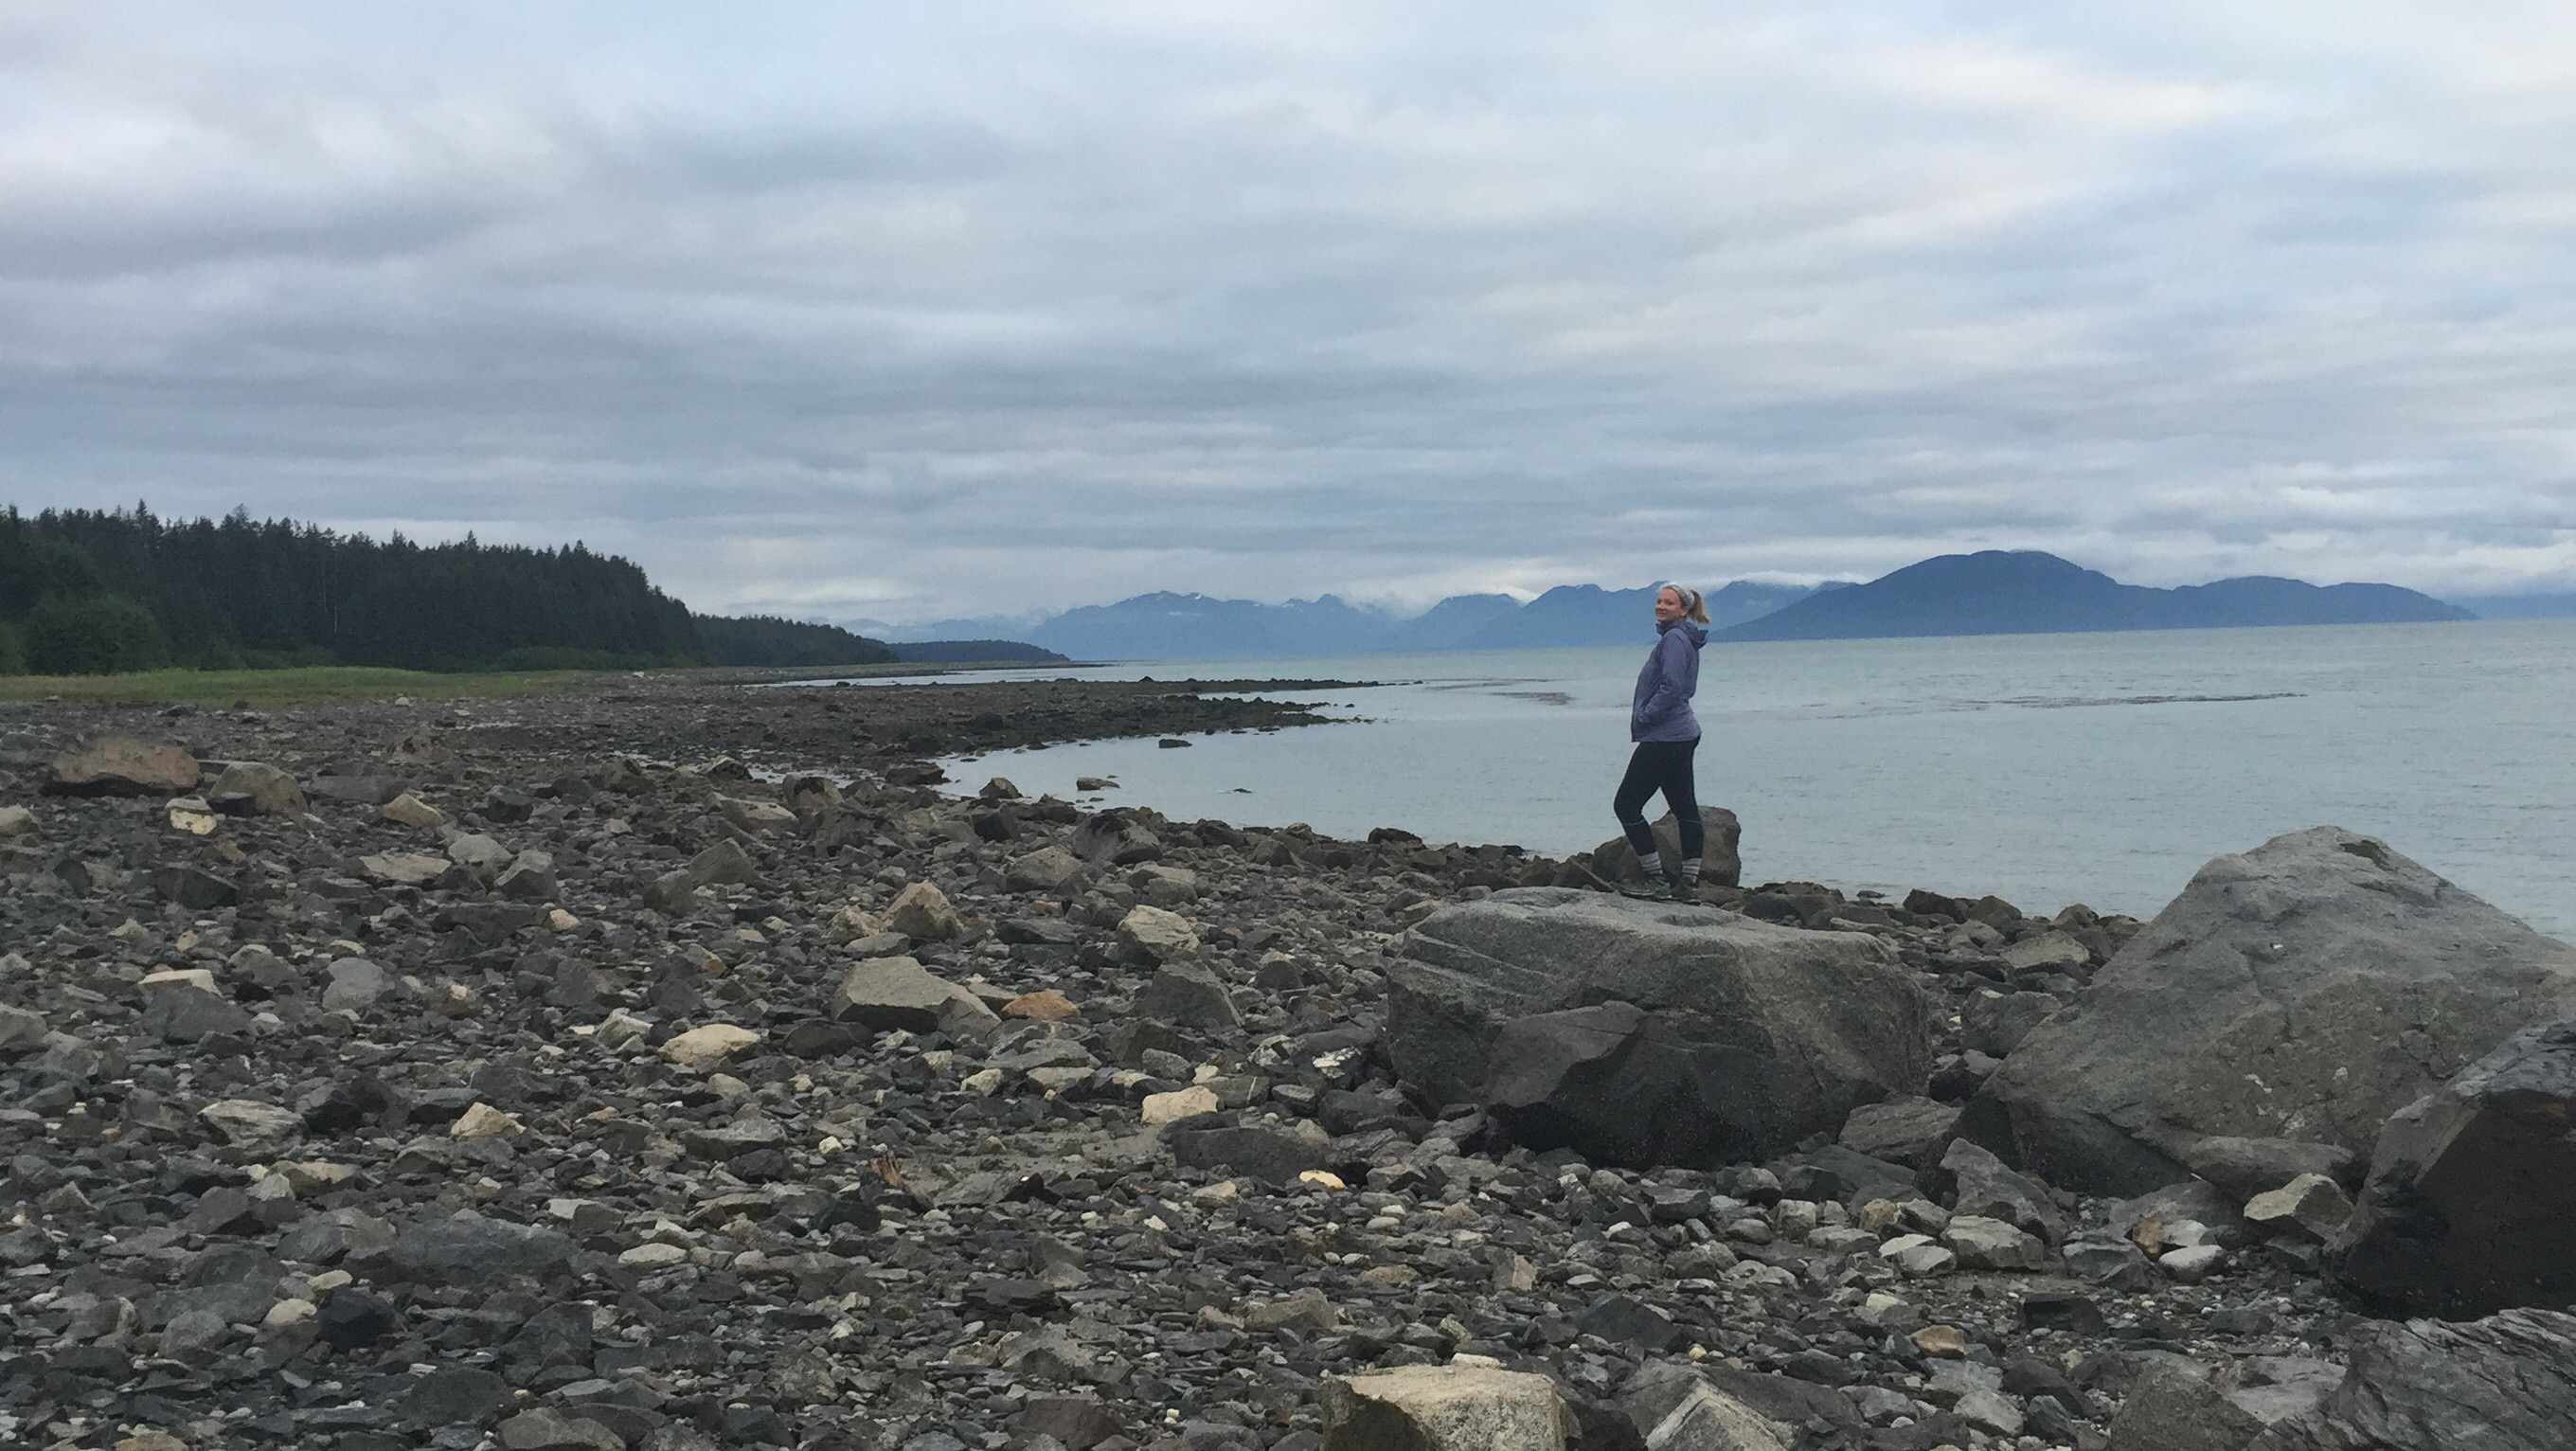 Podcast Episode #26: Weighing Your Options at the National Parks, ft. Glacier Bay and Denali National Parks